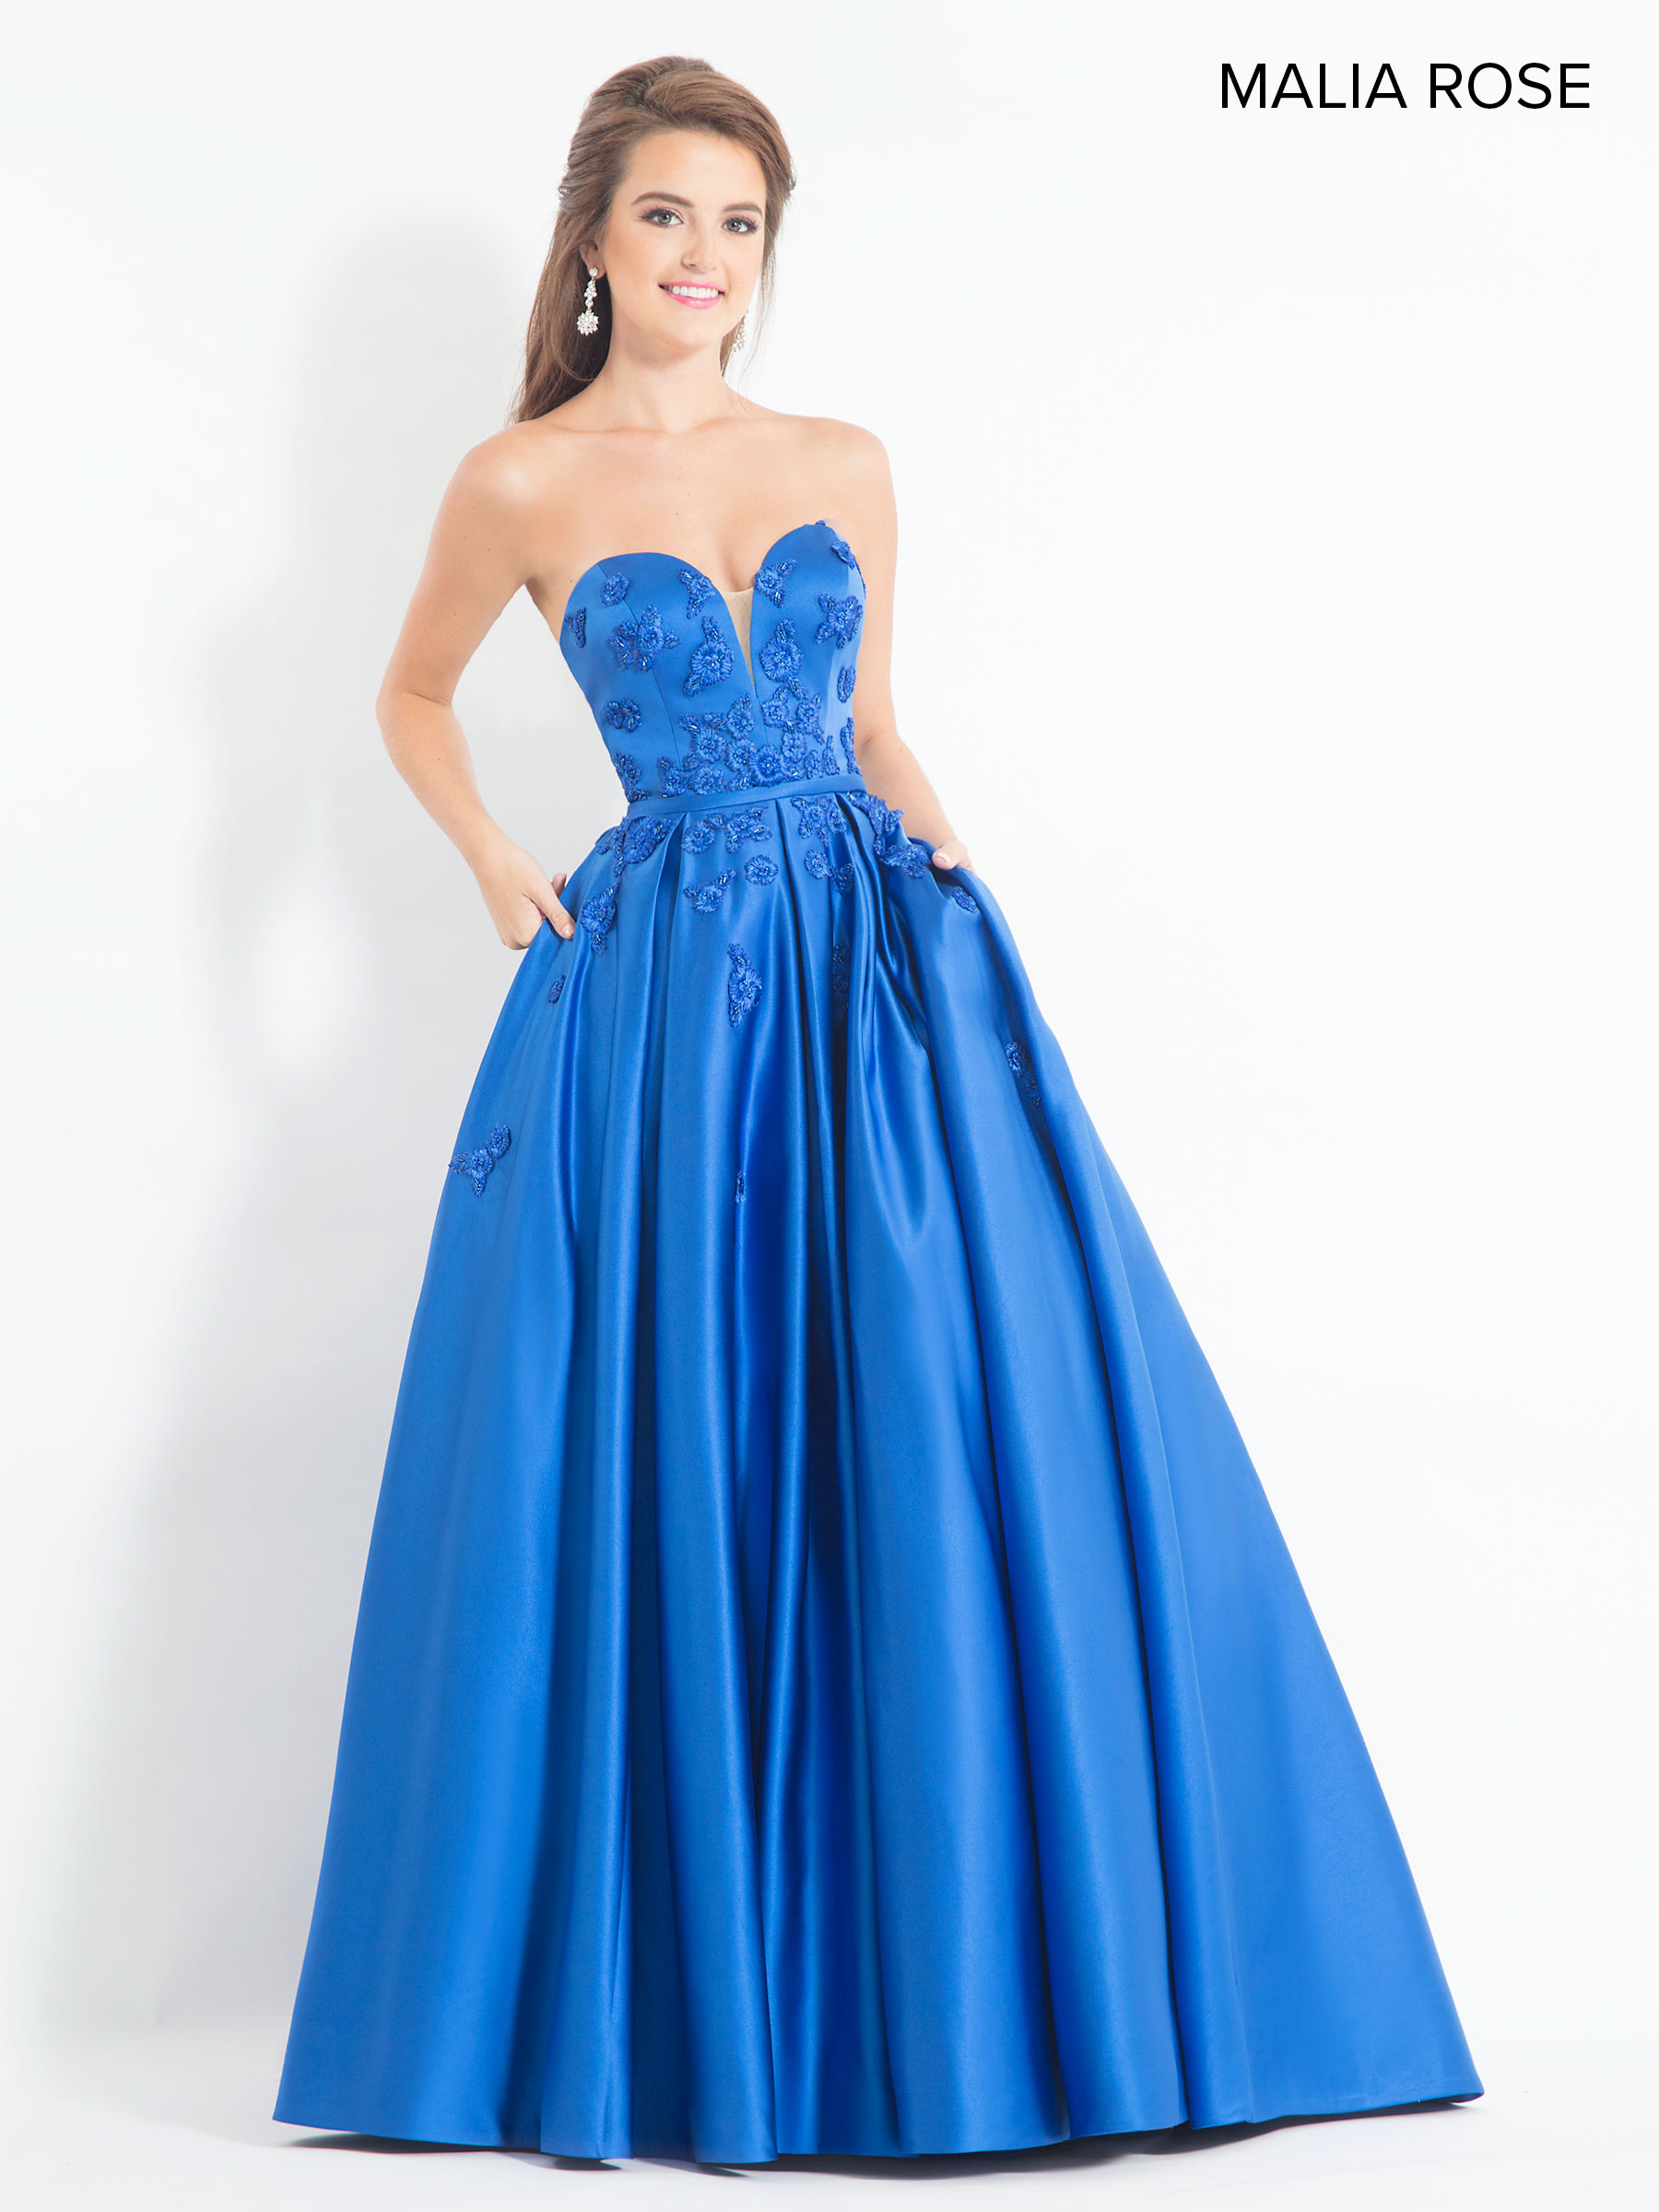 d120e9cad569 Malia Rose Prom Dresses | Style - MP1030 in Royal or Black Color